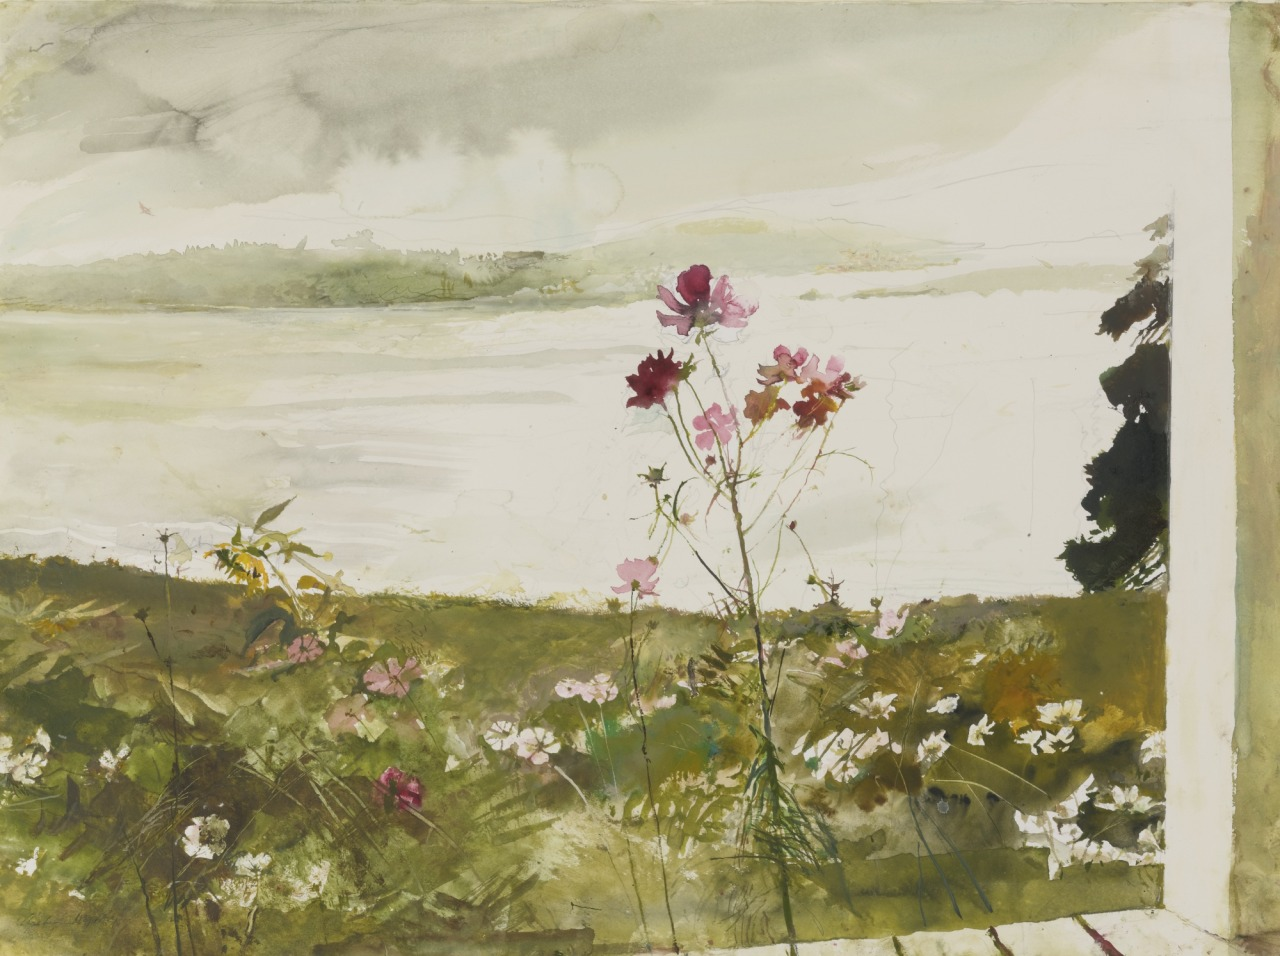 thusreluctant: Cosmos by Andrew Wyeth